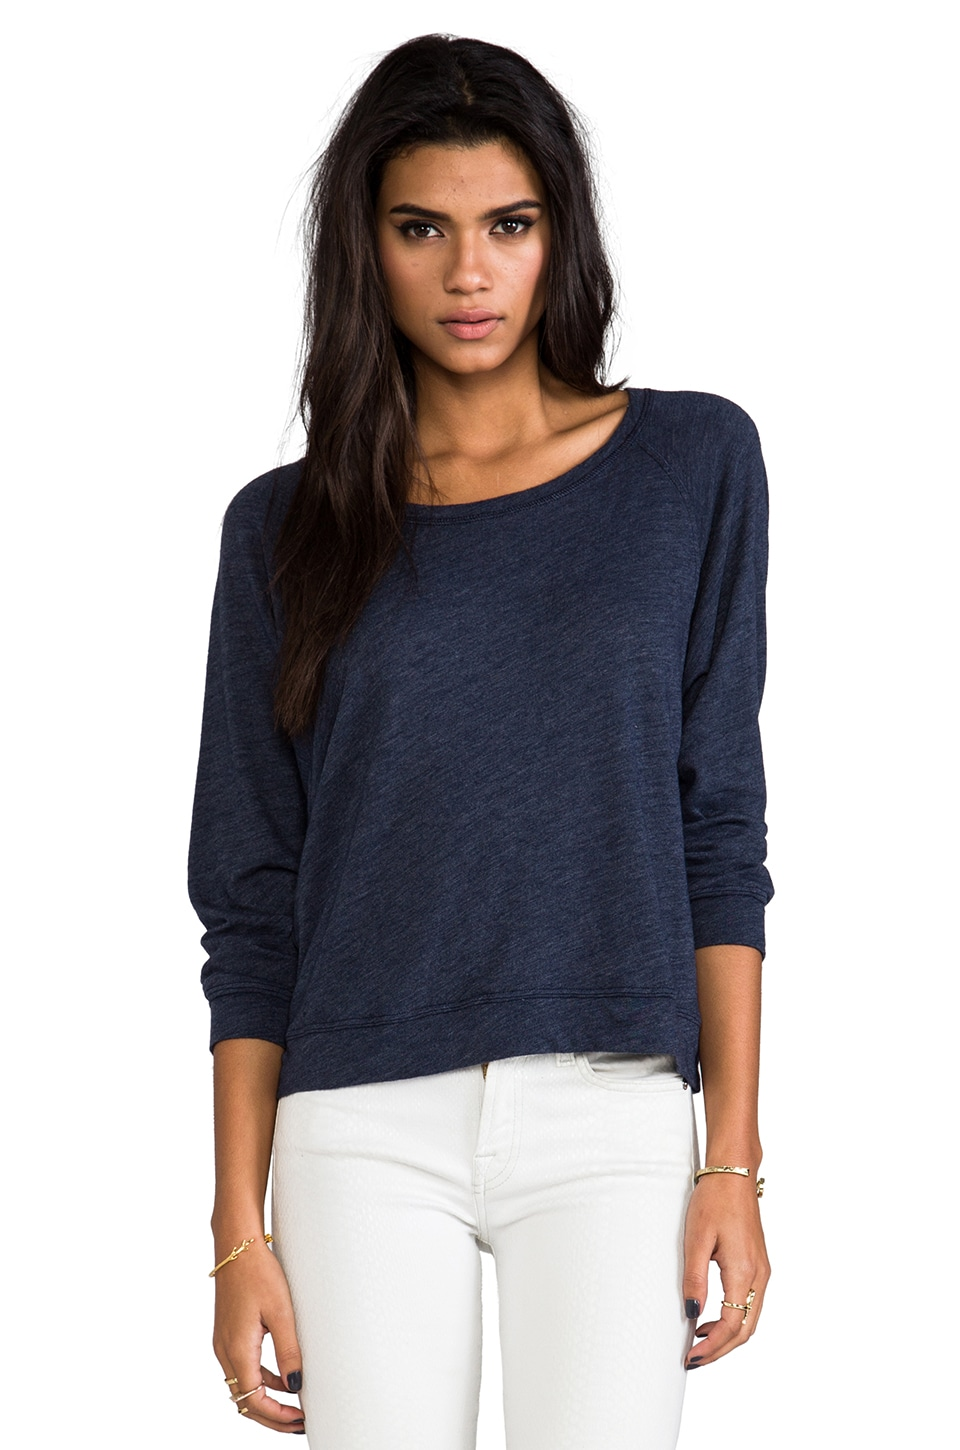 Velvet by Graham & Spencer Velvet Cozy Heather Matylda Pullover in Nino